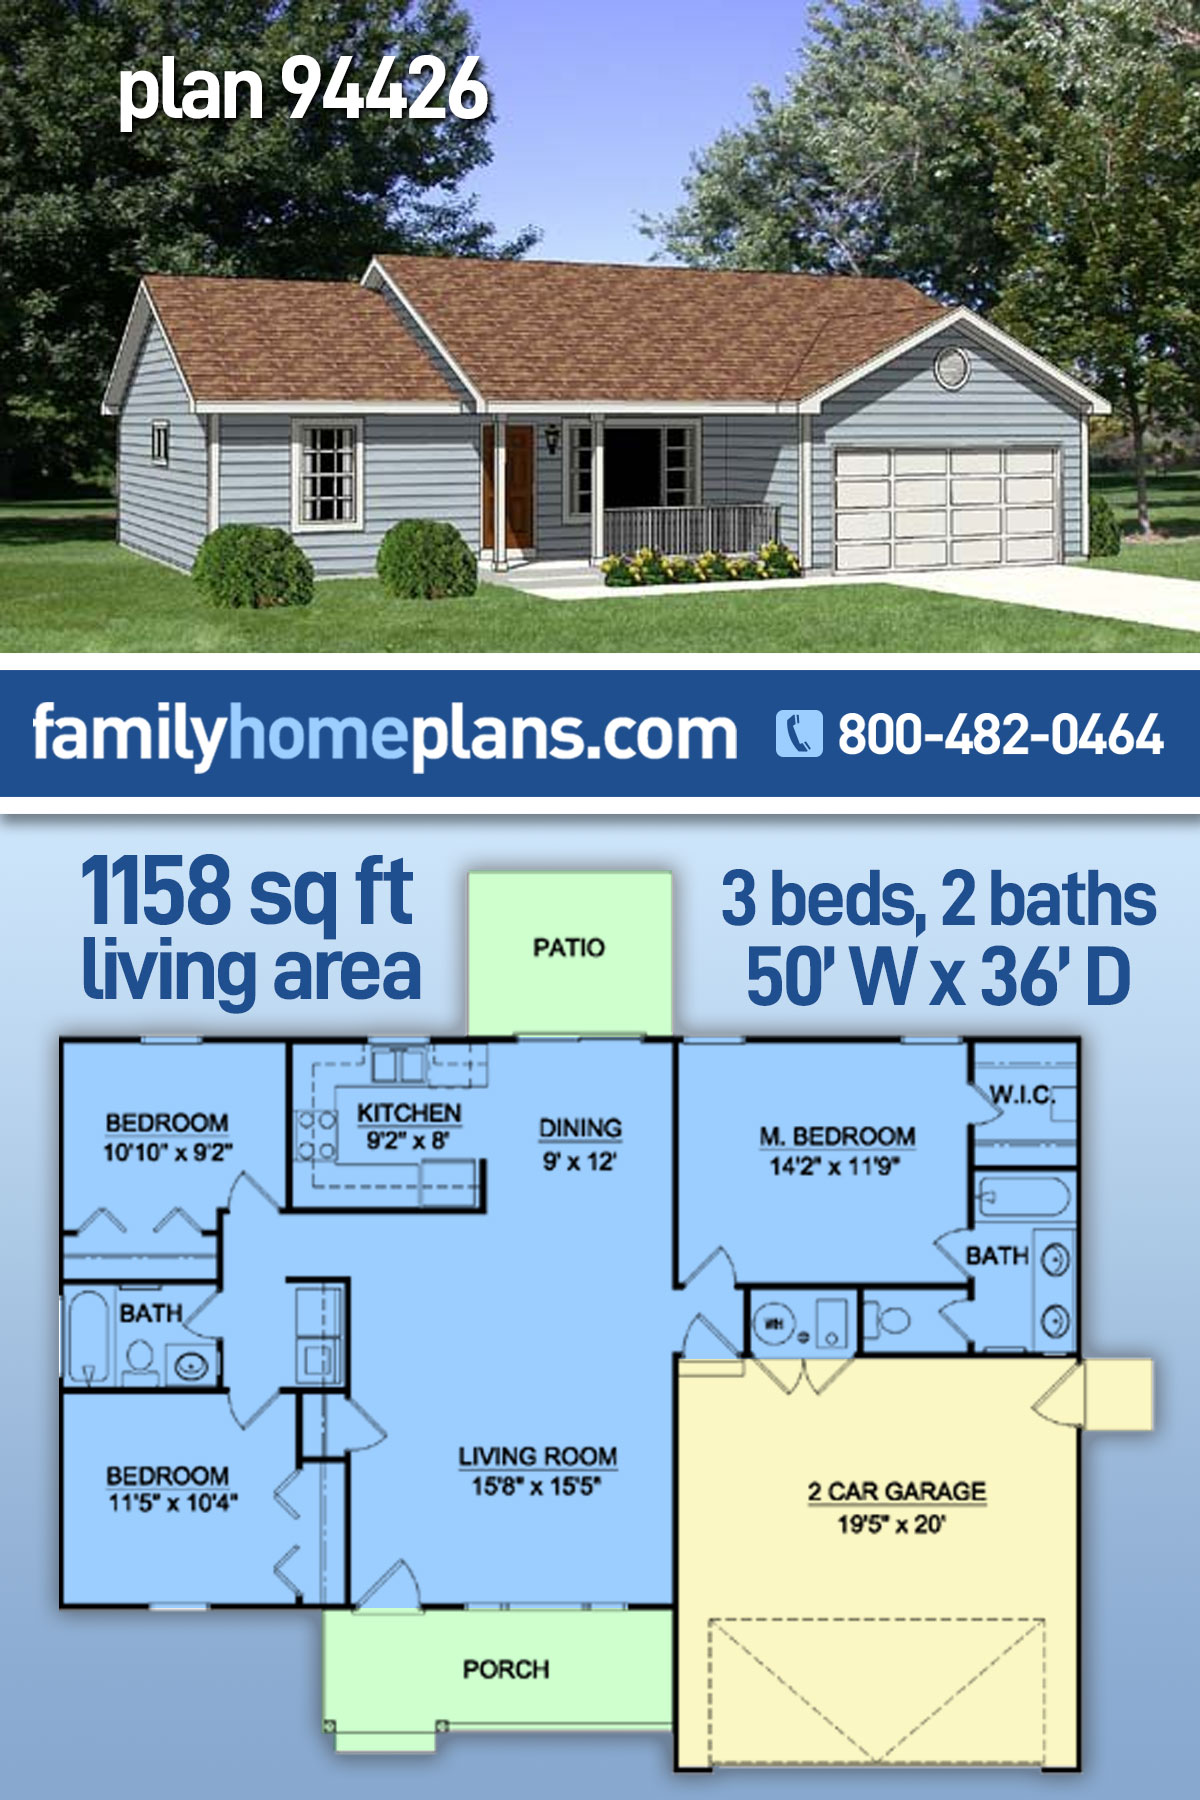 Ranch House Plan 94426 with 3 Beds , 2 Baths , 2 Car Garage